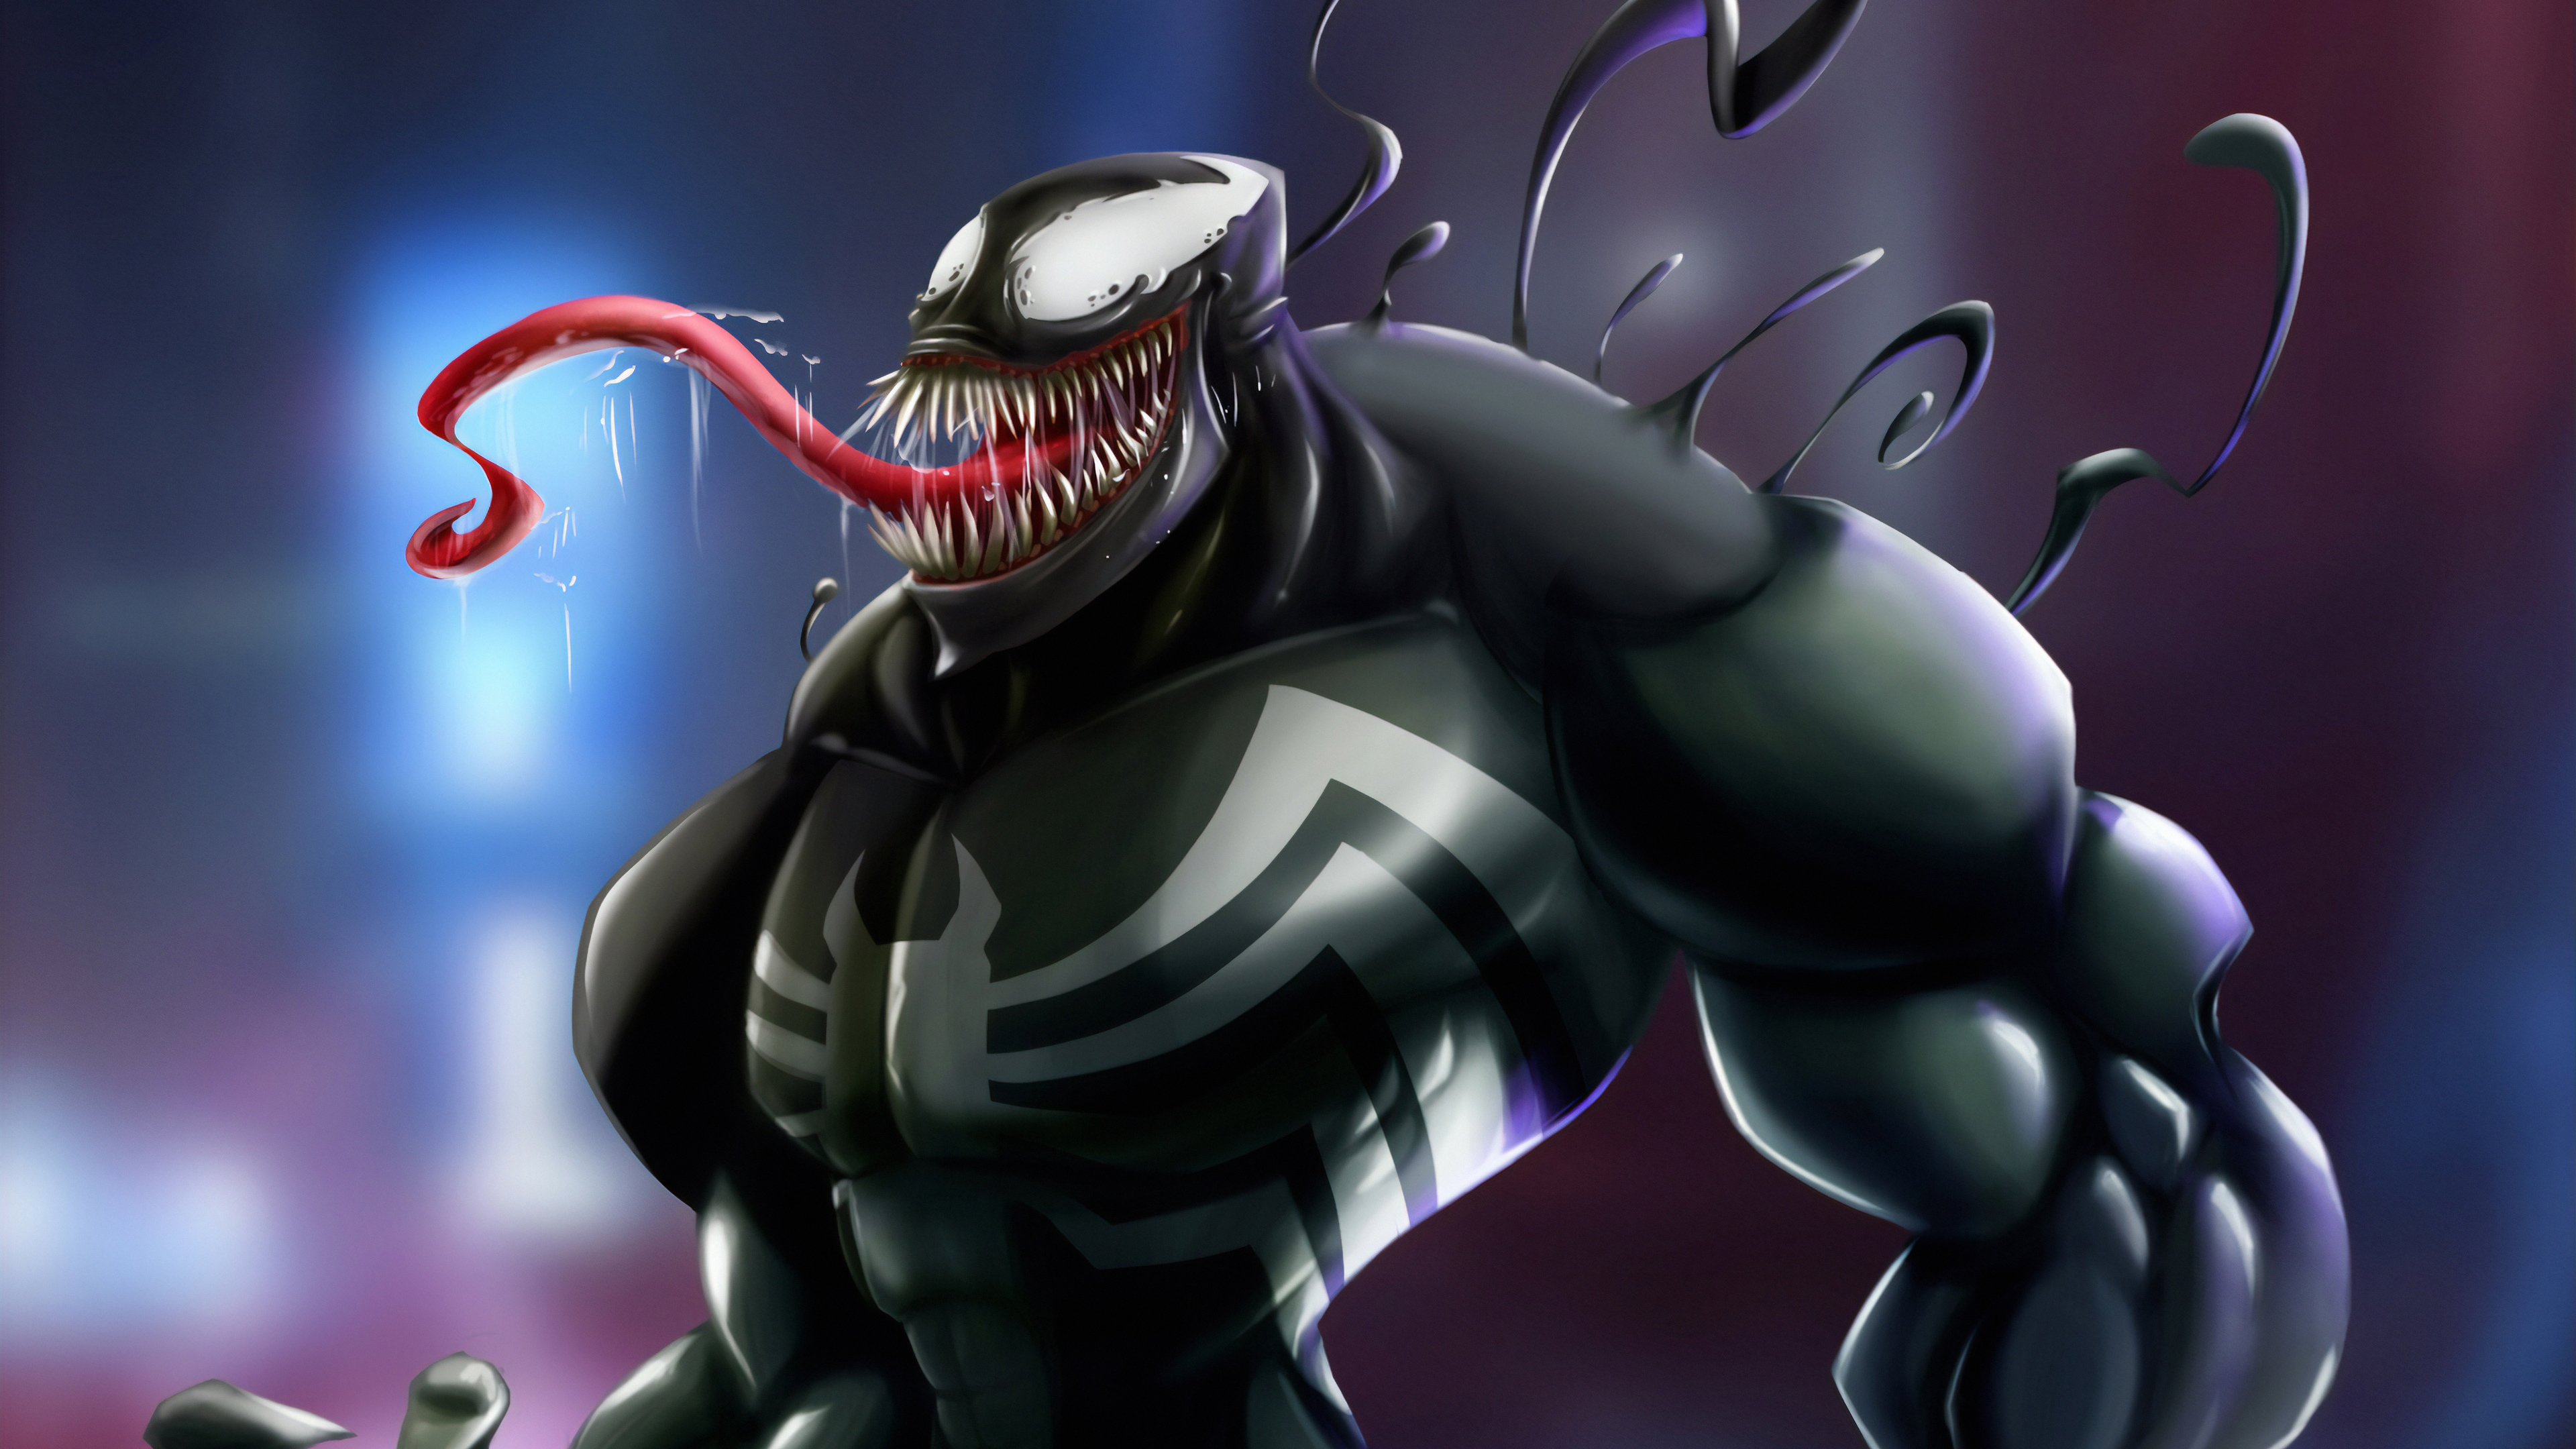 venom newart 1570394789 - Venom Newart - Venom wallpapers, superheroes wallpapers, hd-wallpapers, digital art wallpapers, artwork wallpapers, 4k-wallpapers